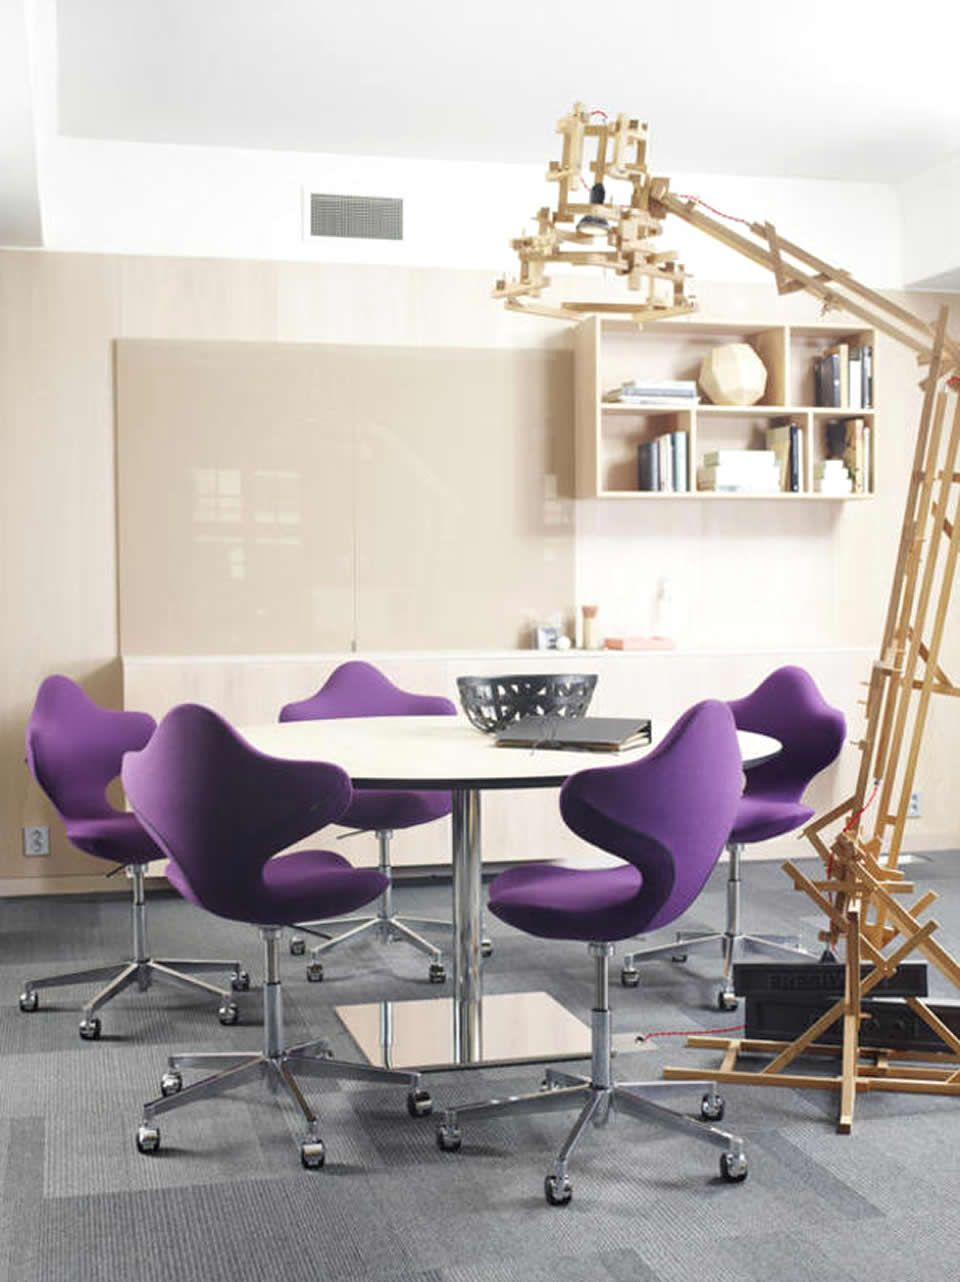 Small fice Meeting Room Interior Design with Purple